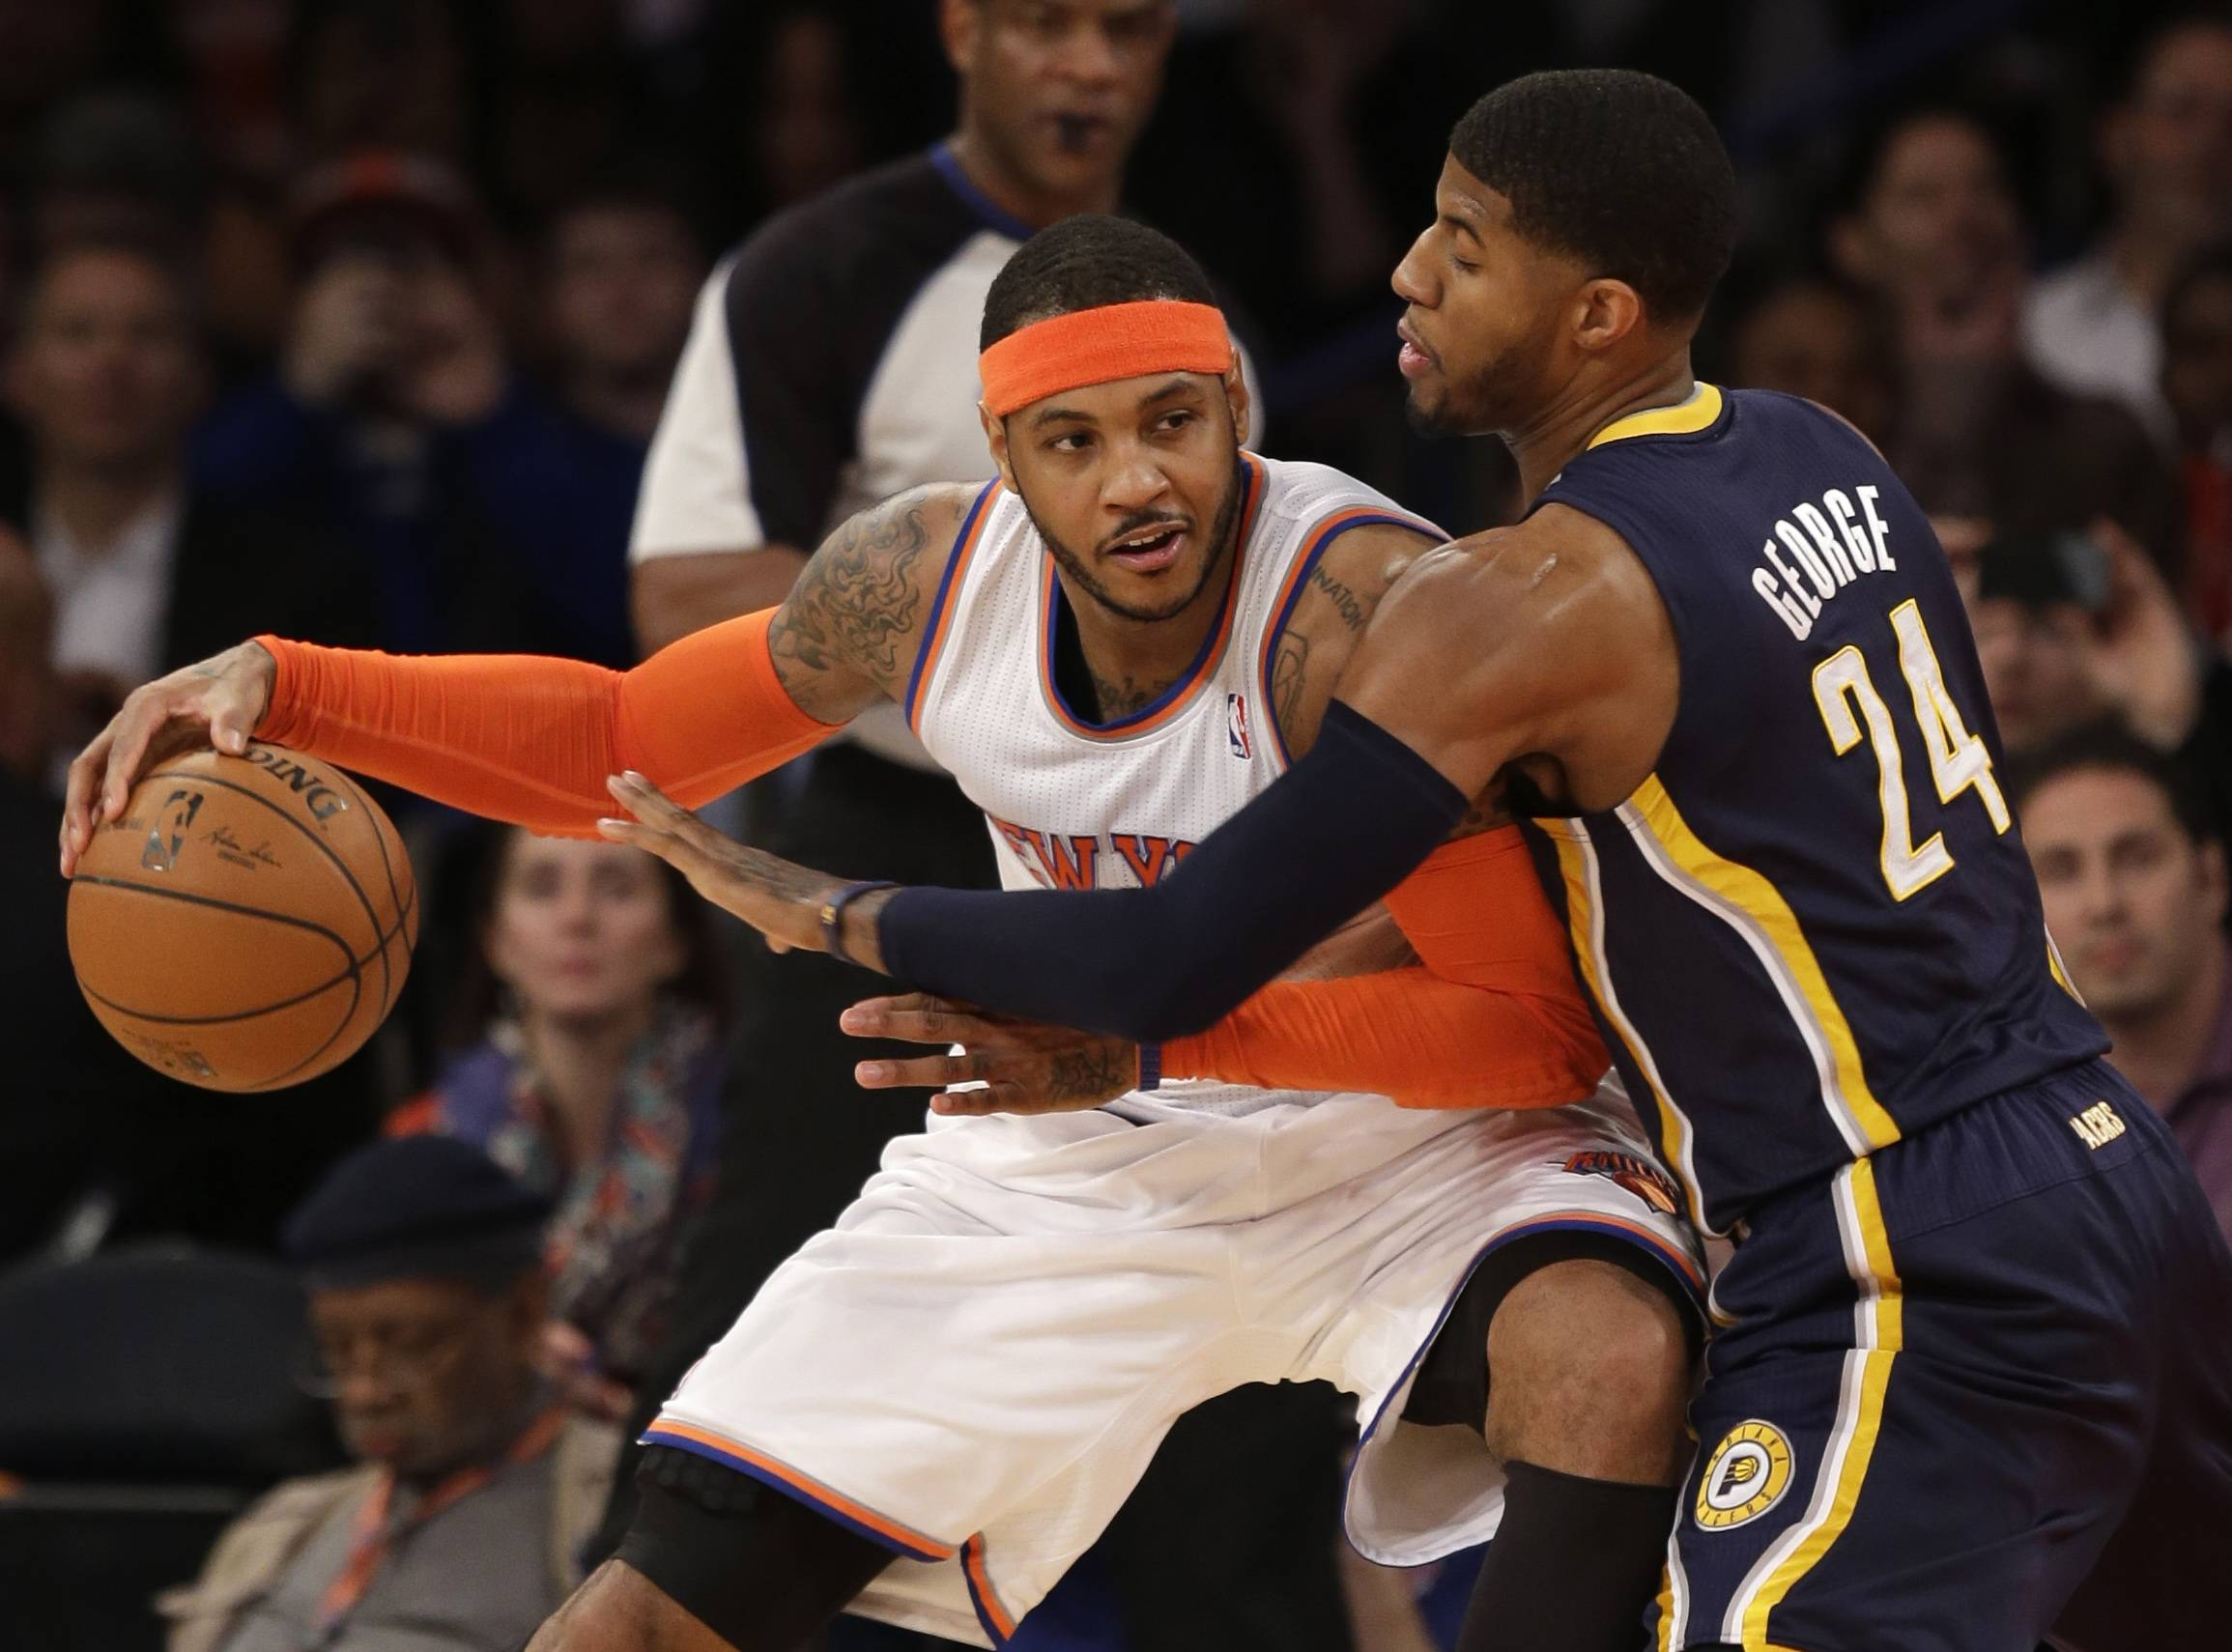 Carmelo Anthony figures to be wooed by Houston, Dallas, the Lakers, Miami and the Bulls as the NBA's free agency period gets underway Tuesday. Will he choose one of those teams or simply elect to stay in New York with Phil Jackson and the Knicks?